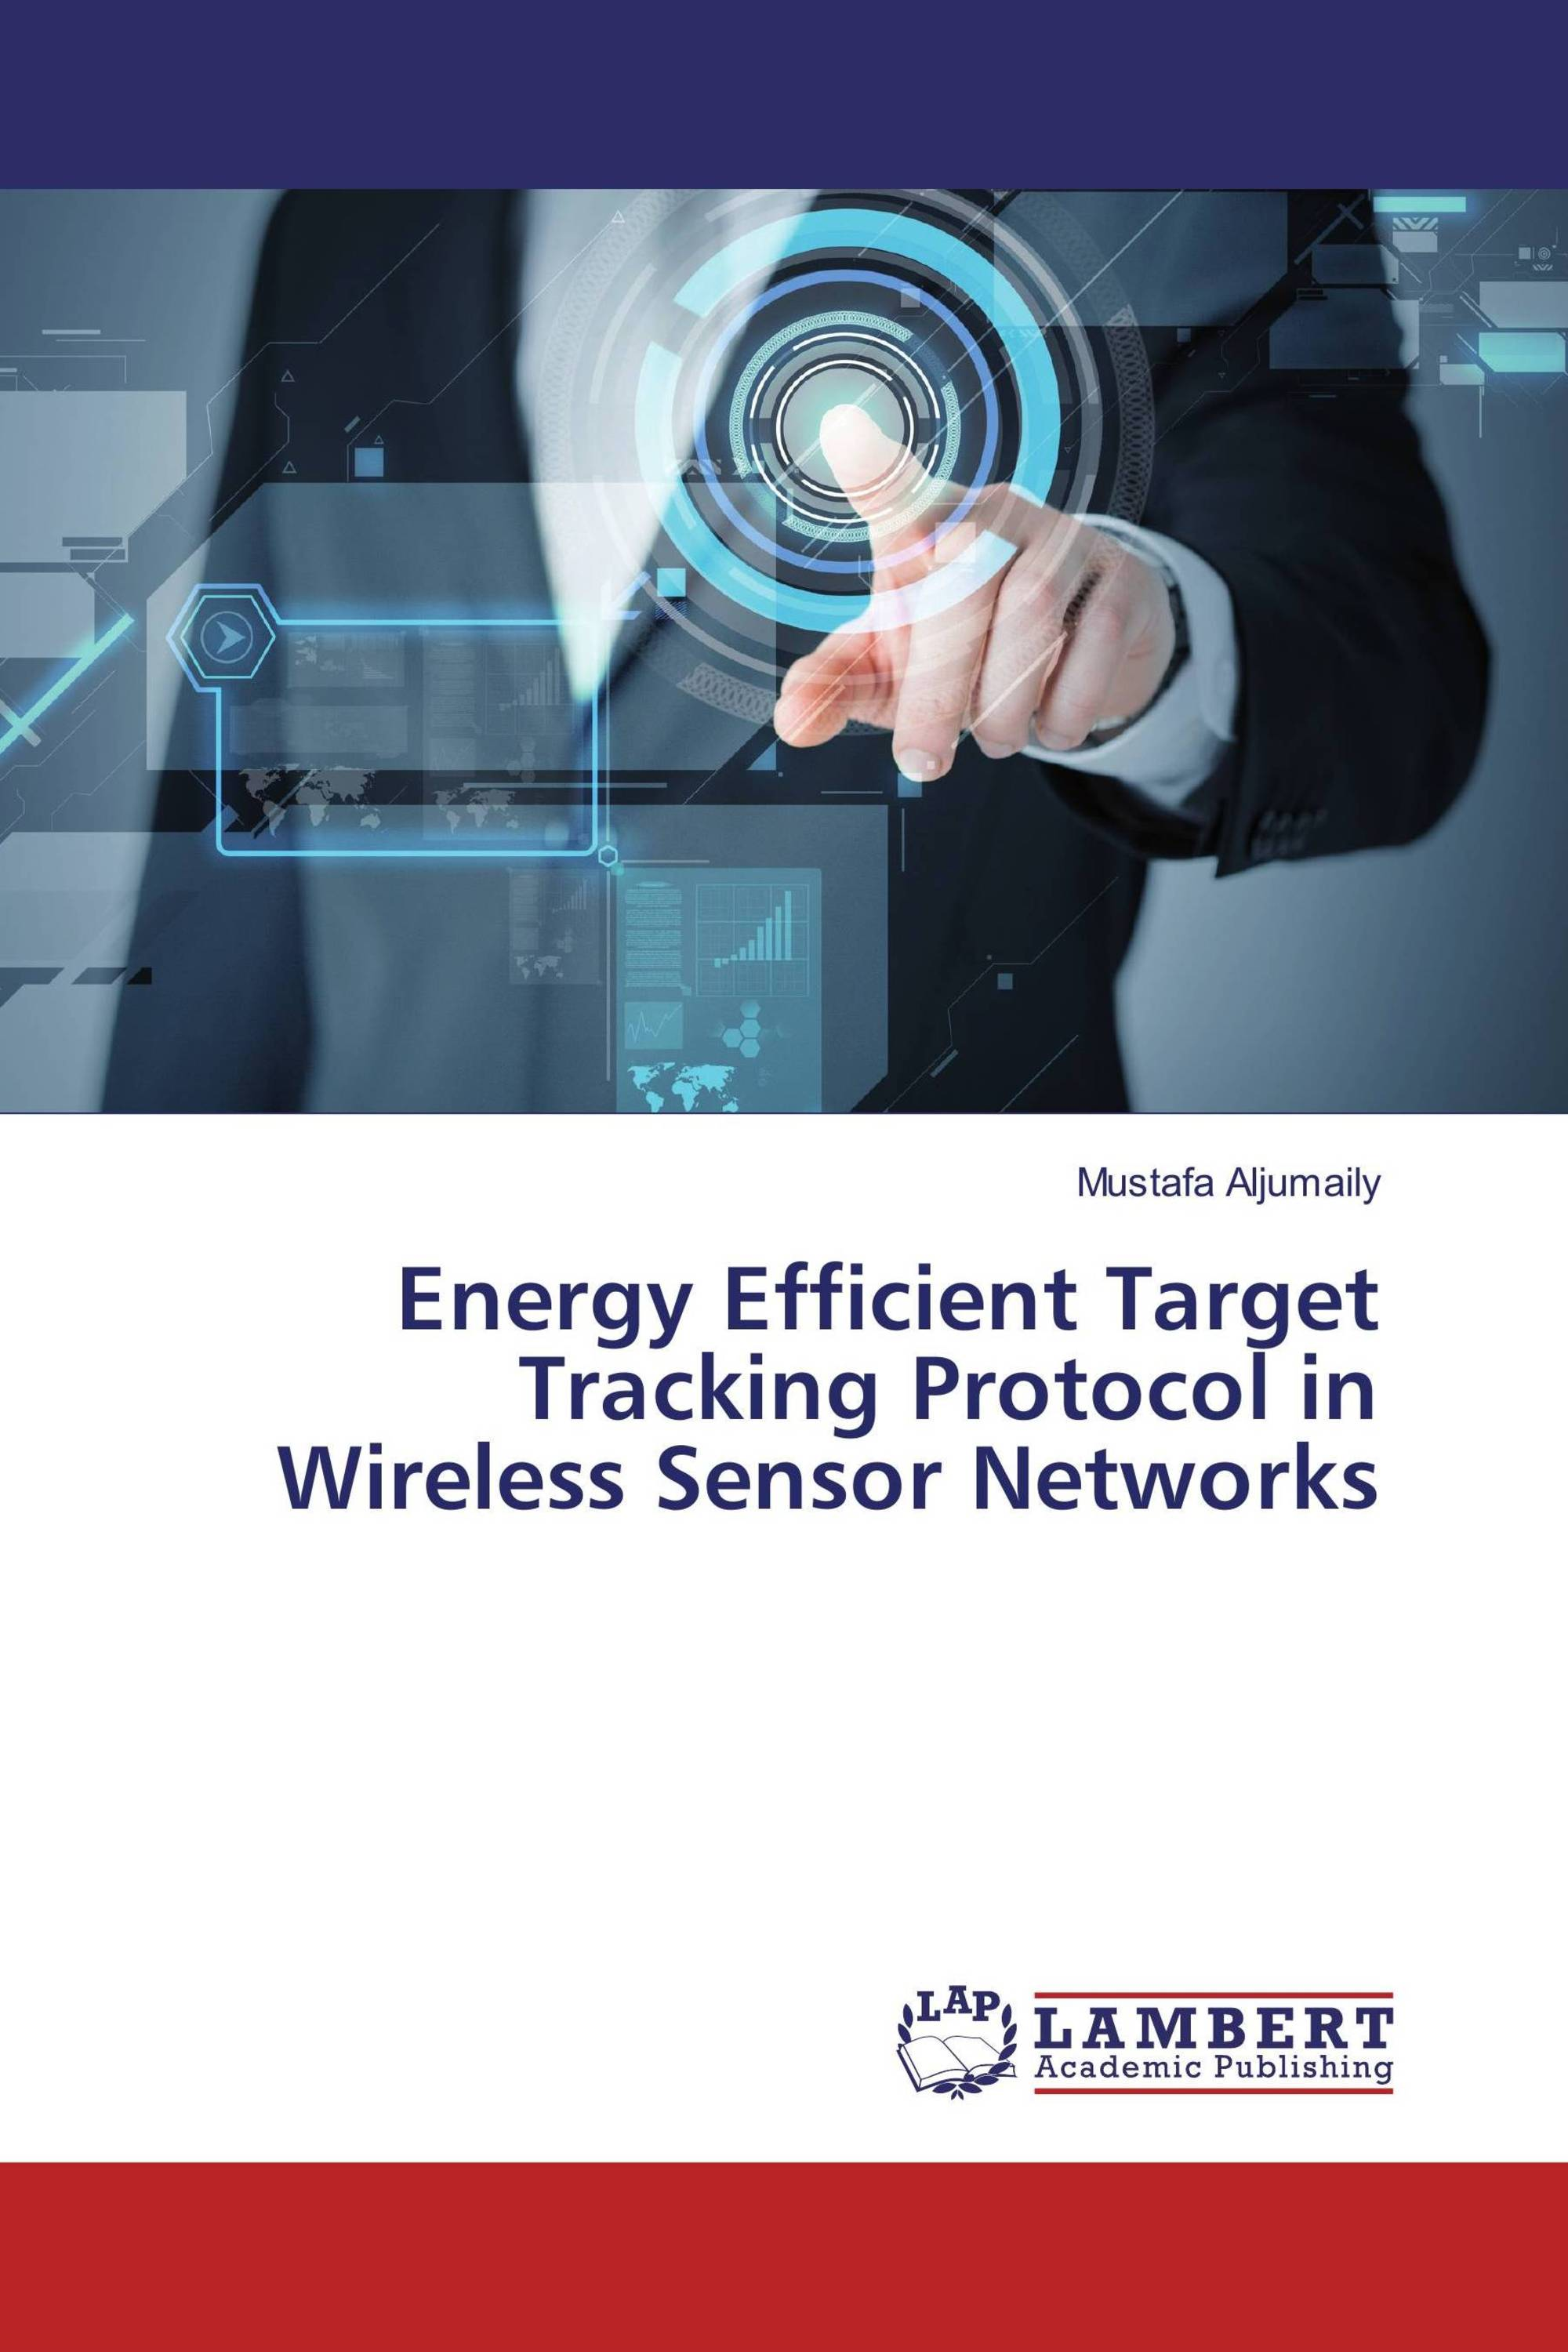 Energy Efficient Target Tracking Protocol in Wireless Sensor Networks